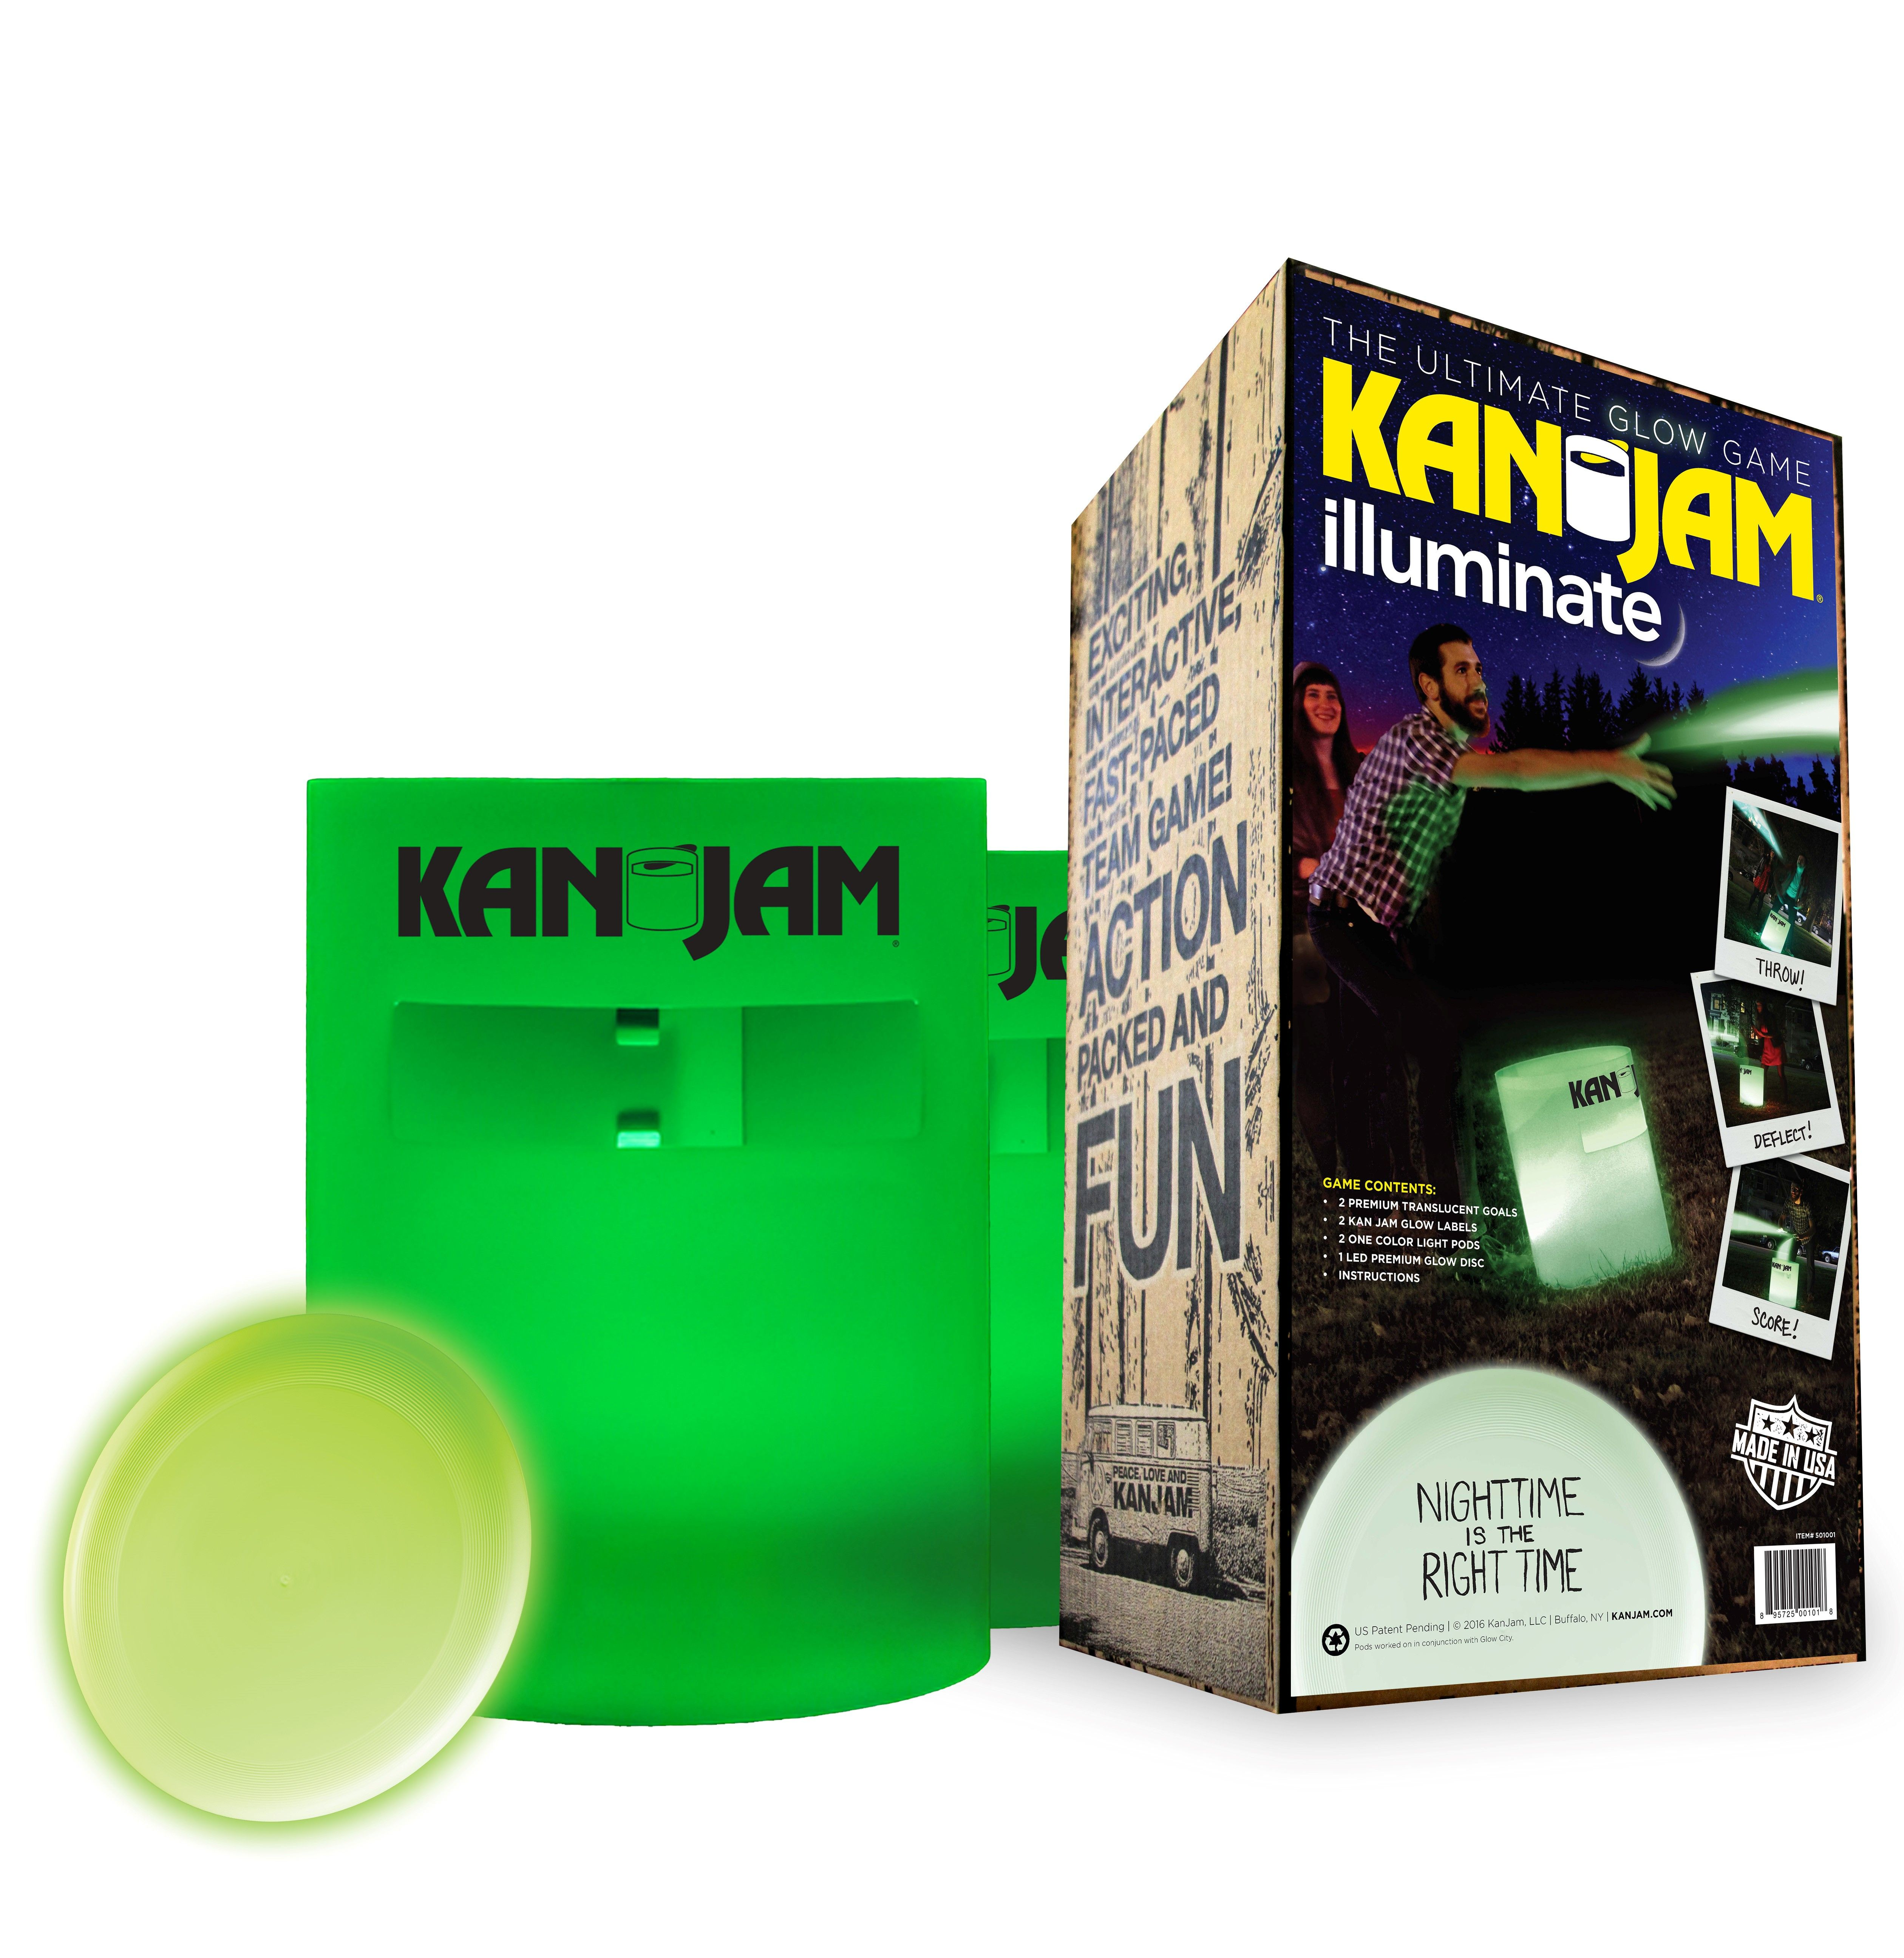 Can Kan Jam Outdoor Ultimate Disc Game Family Portable Fun Event Sports Good USA